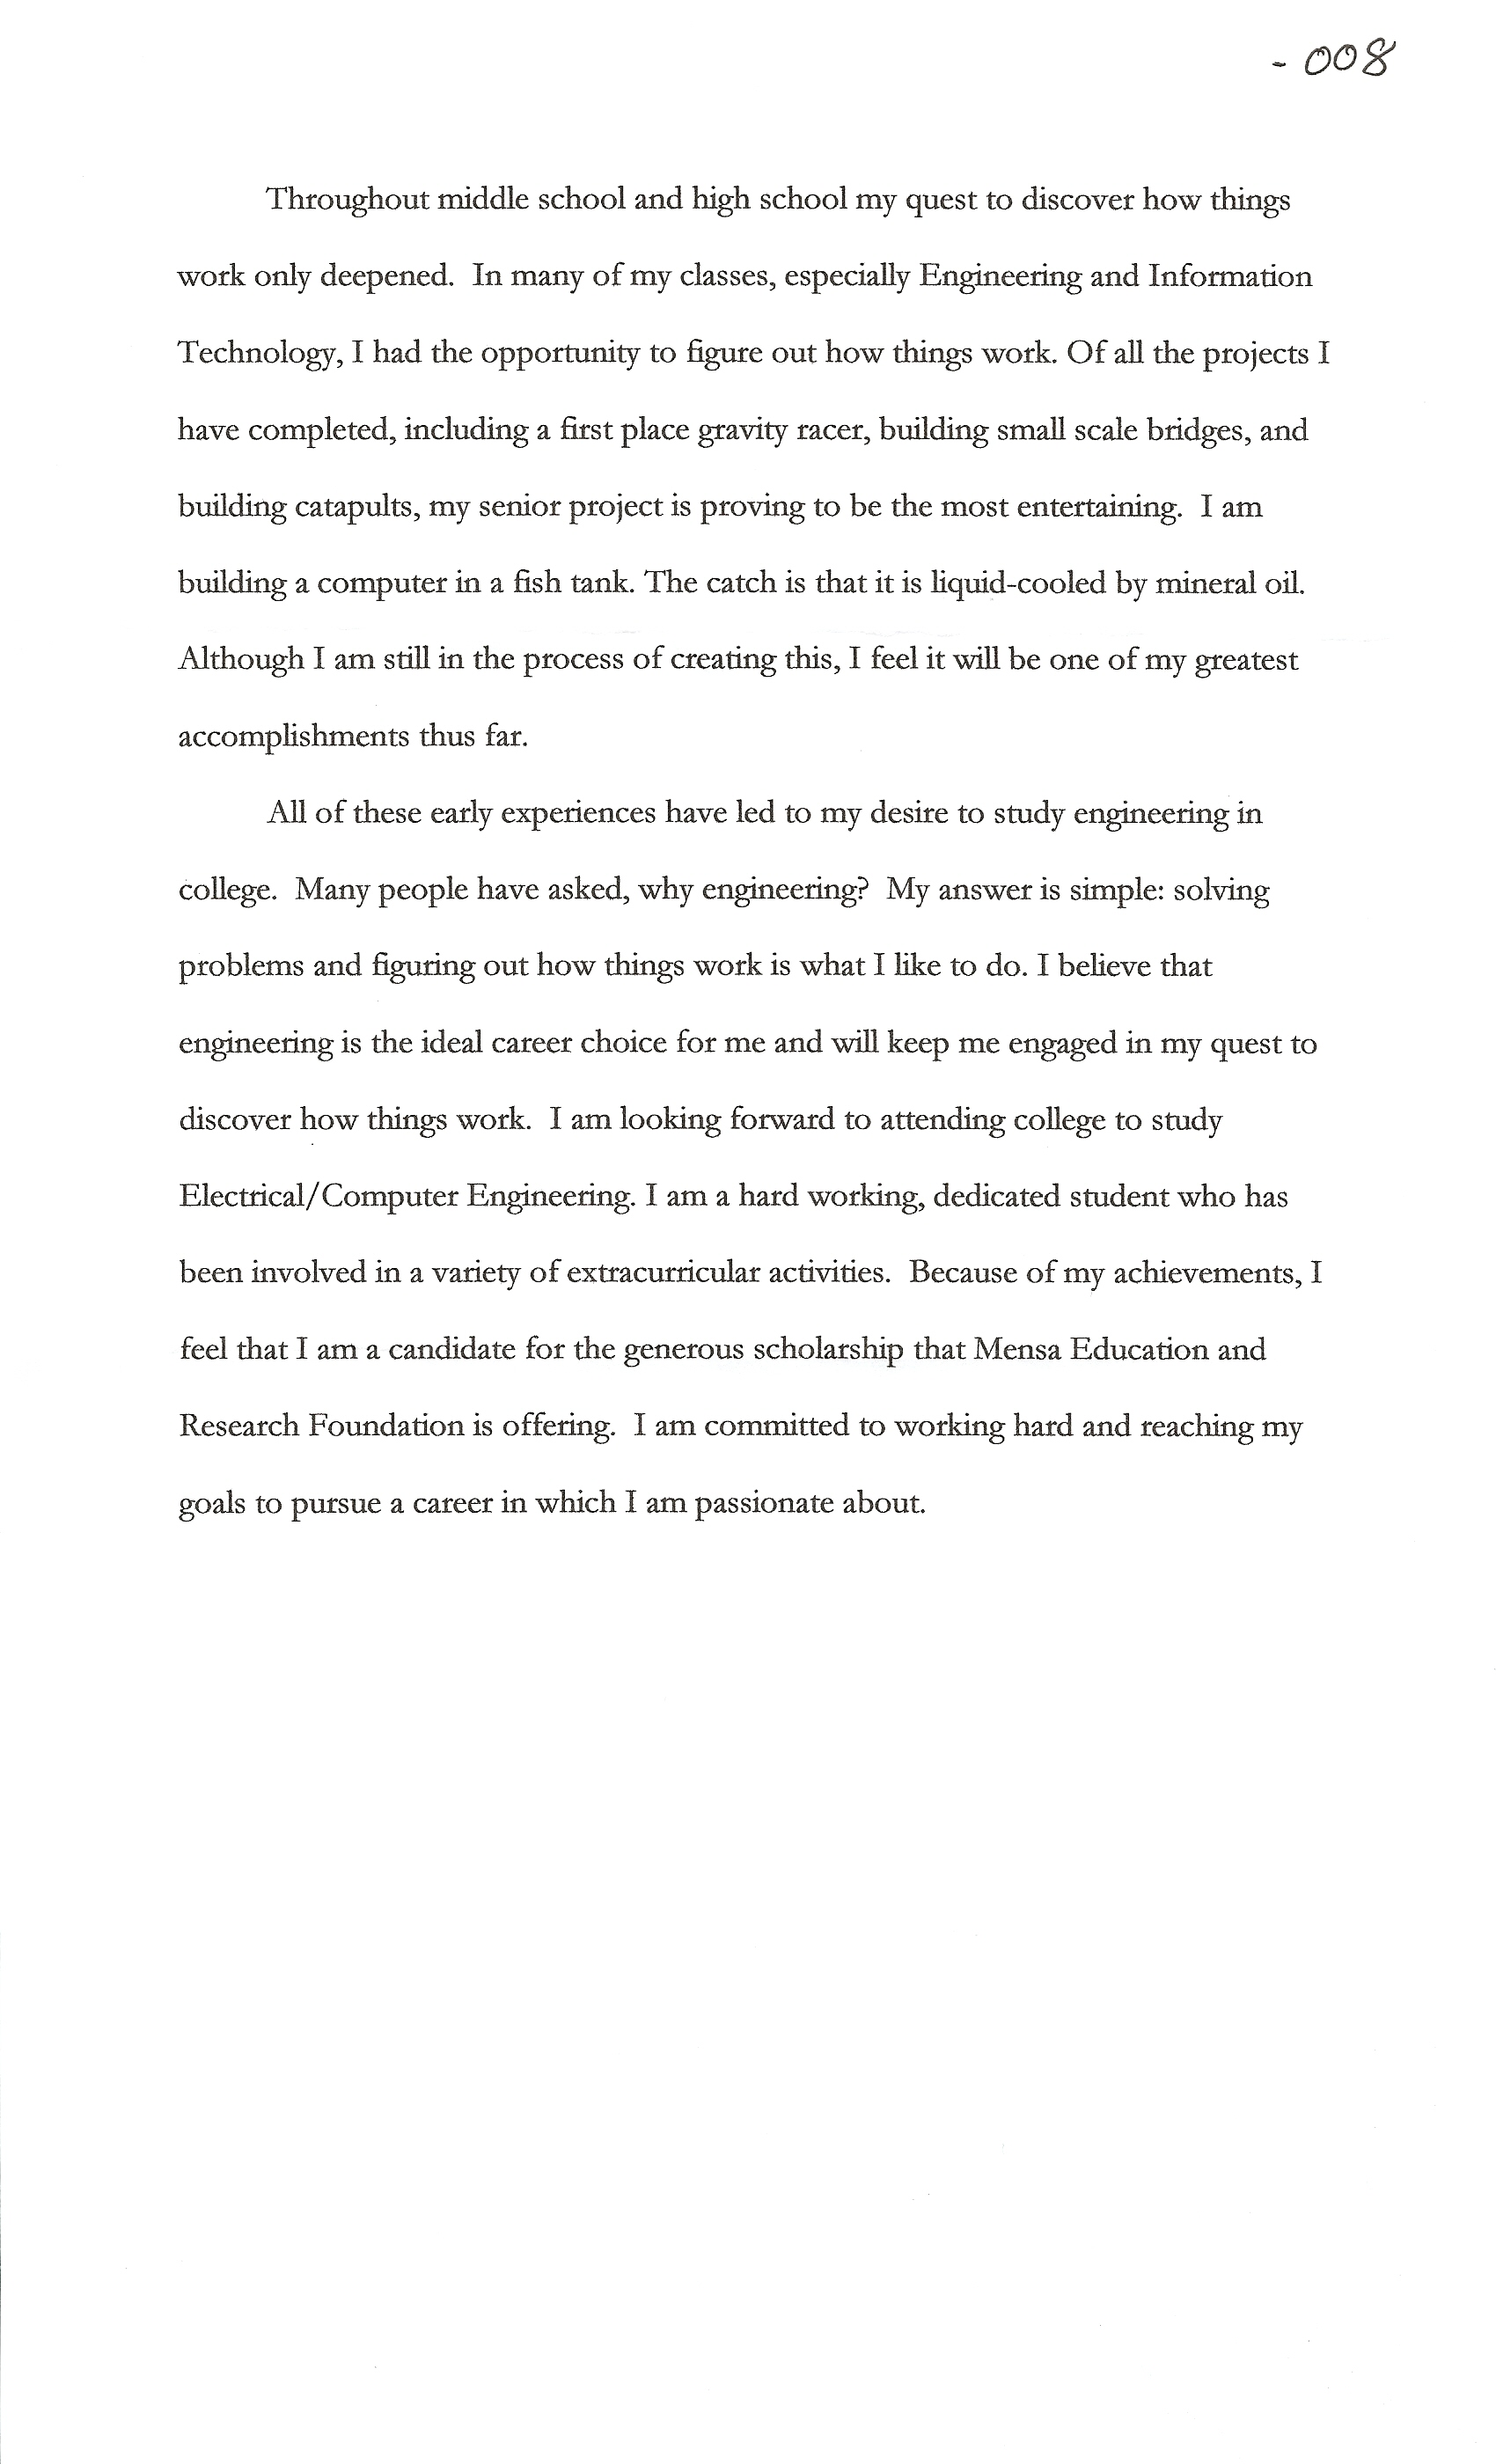 014 Joshua Cate Essay Example Staggering Studymode Written In Kannada Language A Day Without Water About Social Problem Full